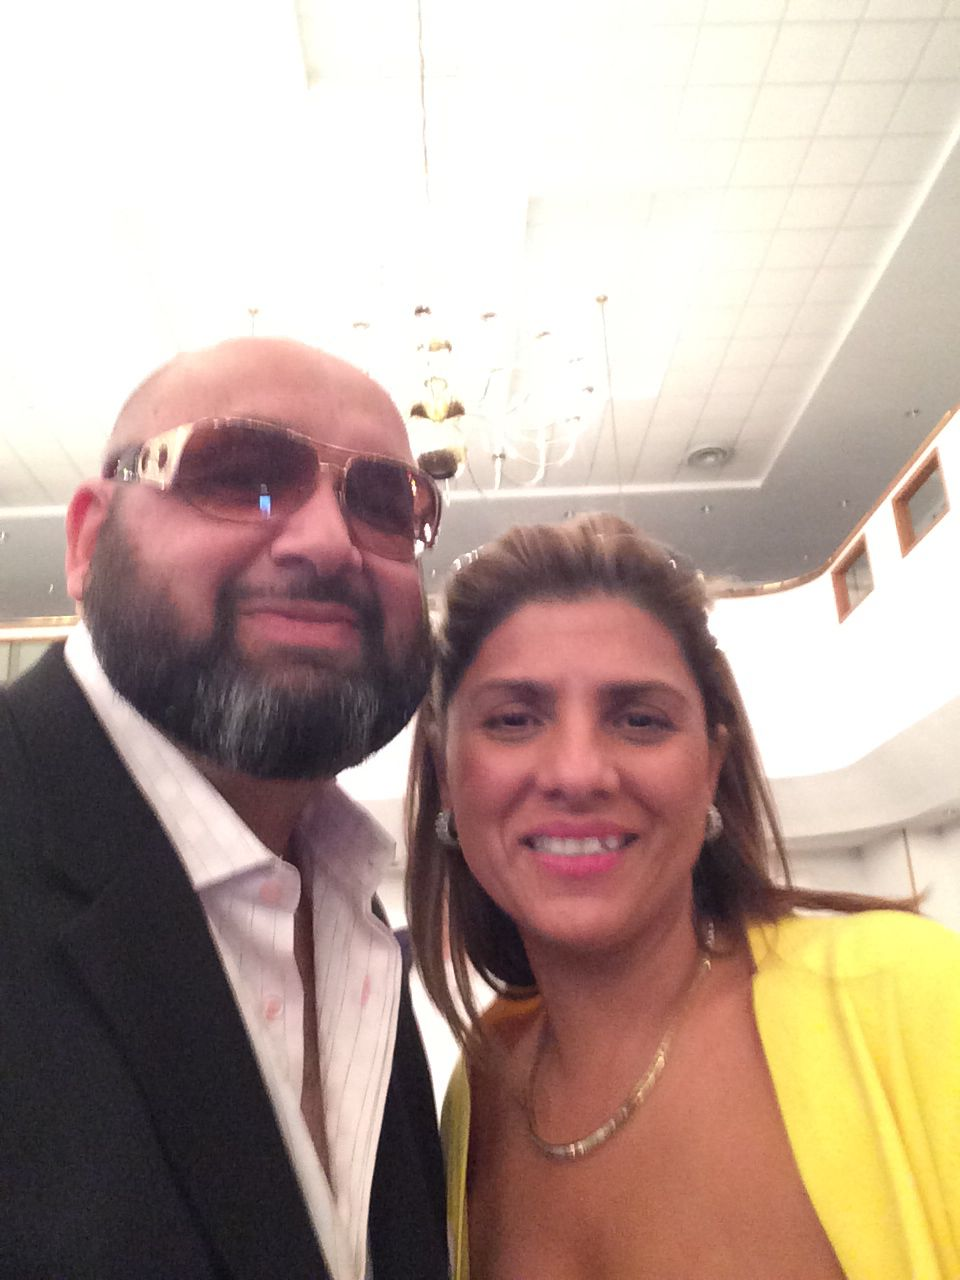 A selfie with my friend Michelle at church!